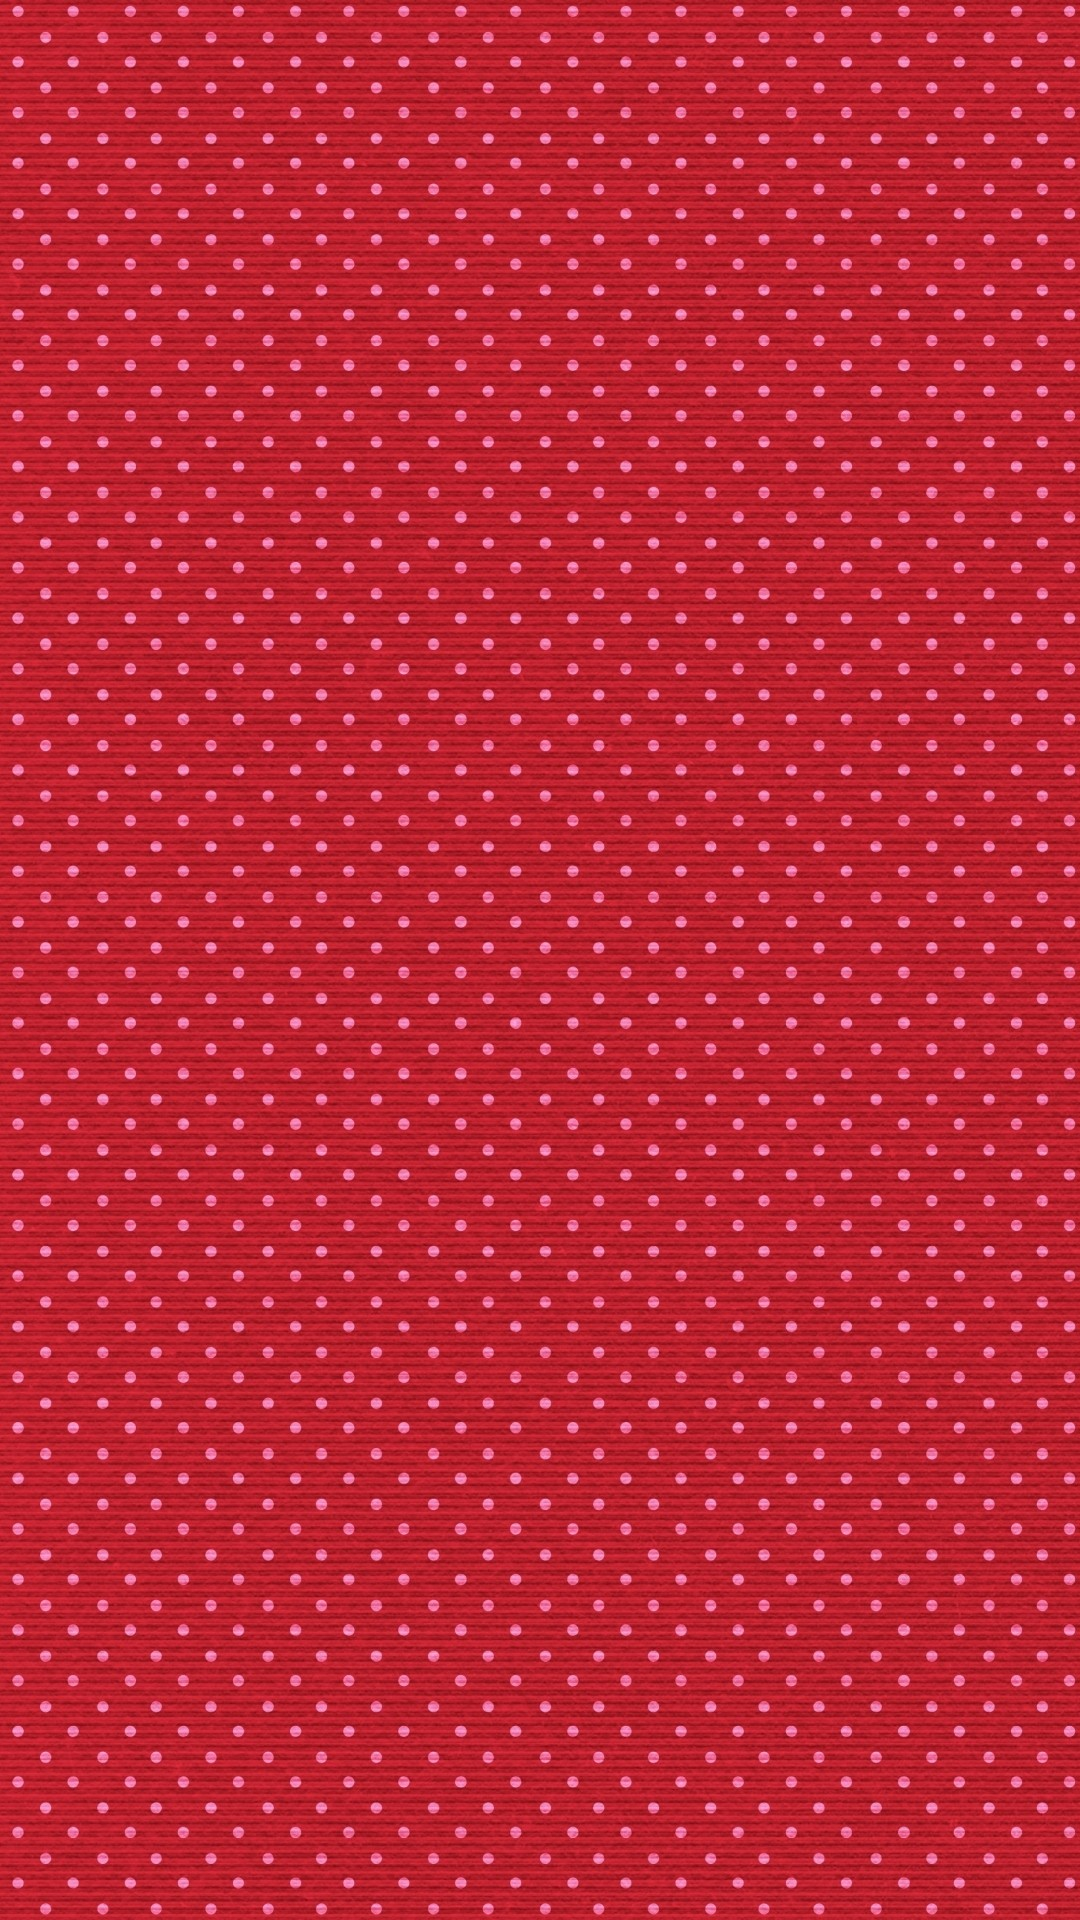 Red Polka Iphone Hd Wallpaper Iphone Wallpaper